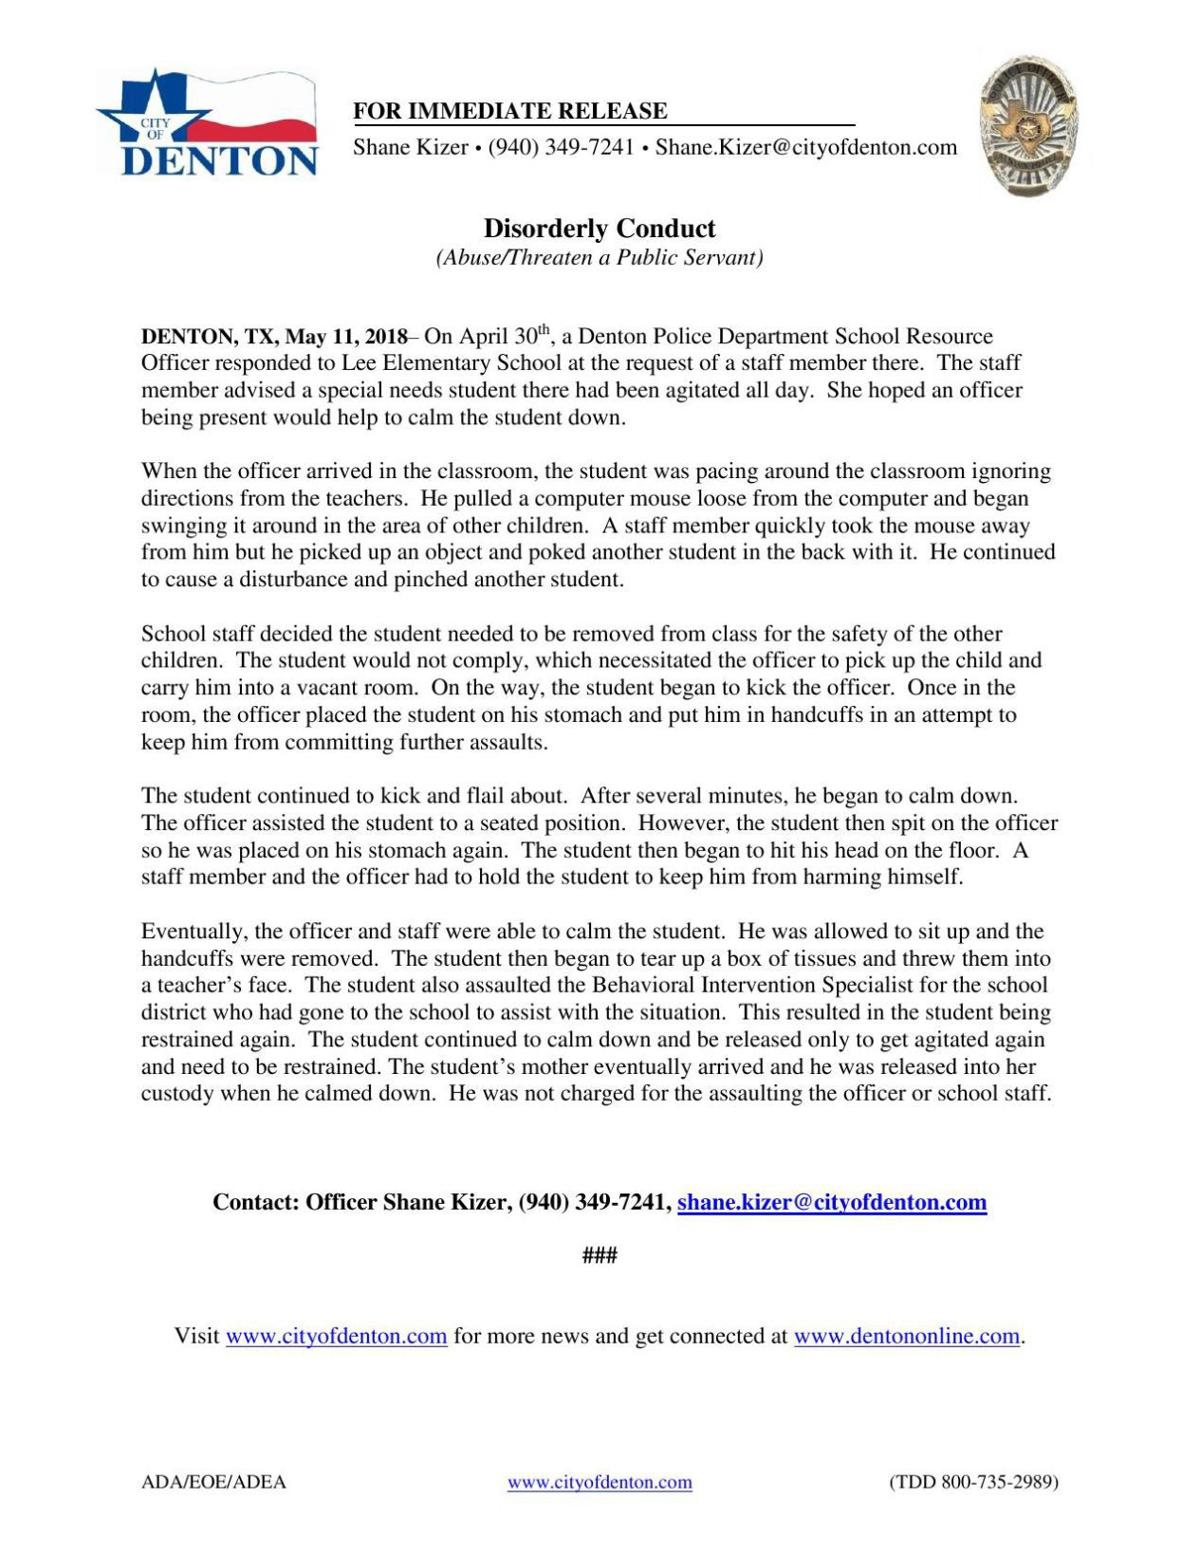 DPD Restraint Press Release